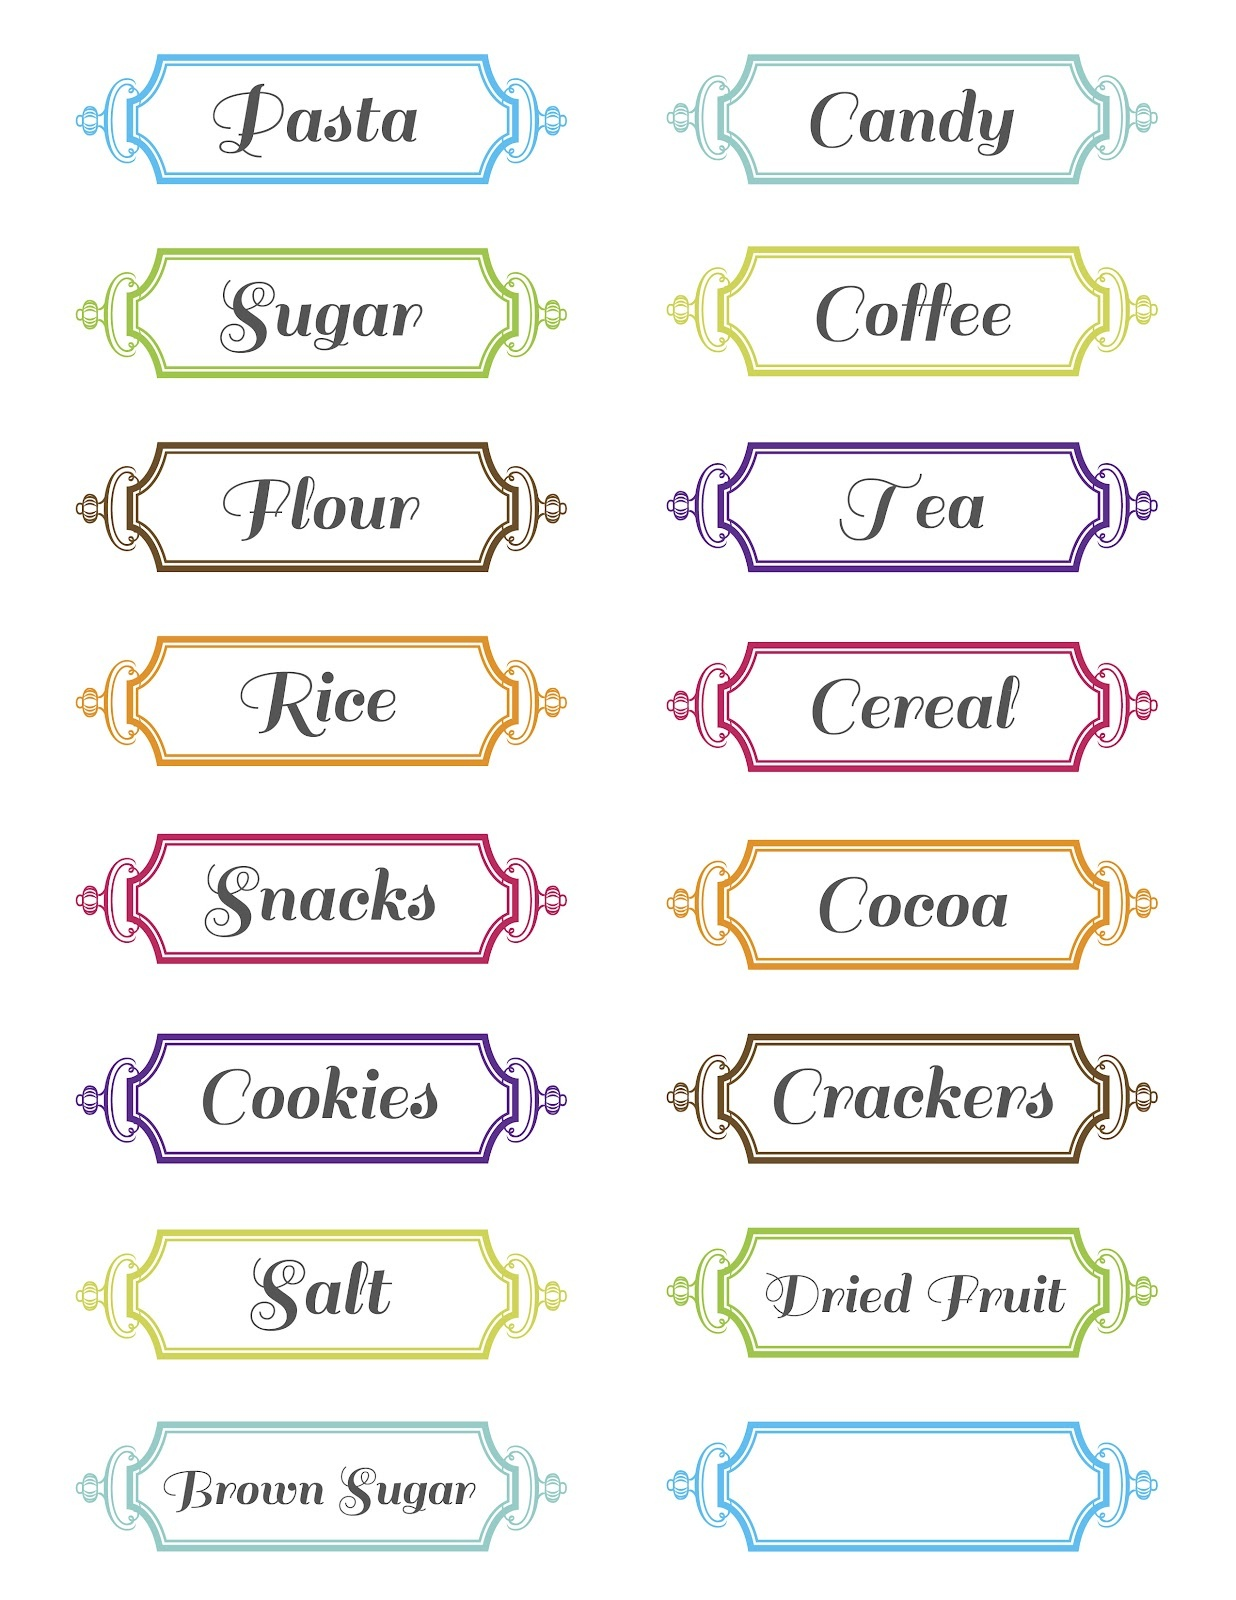 11 Free Printable Label Design Template Images - Printable Round - Free Printable Labels